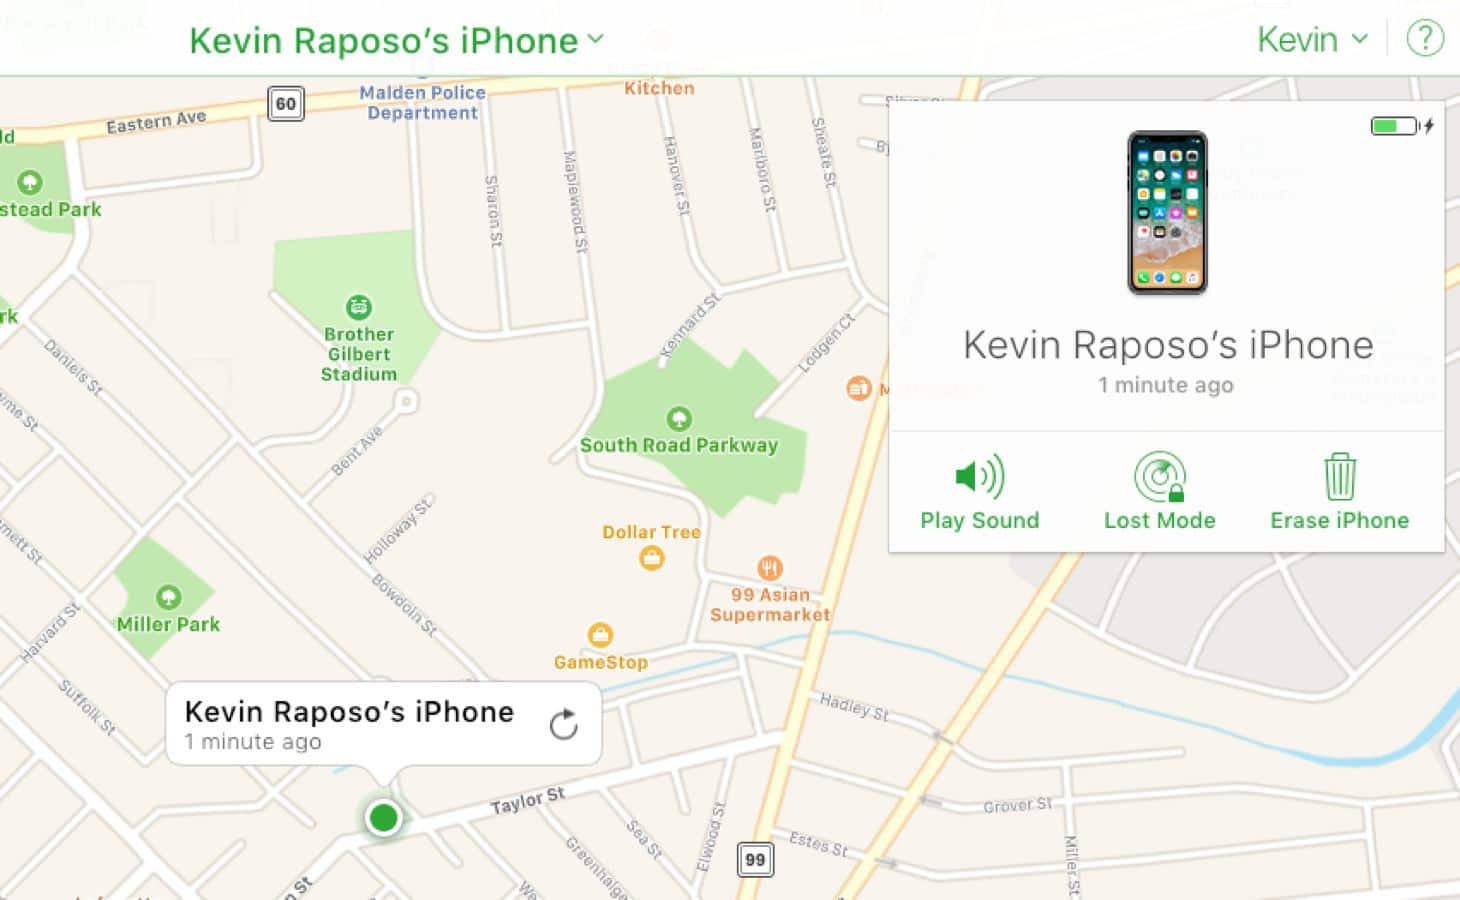 Did you know you could use Find my iPhone to track down